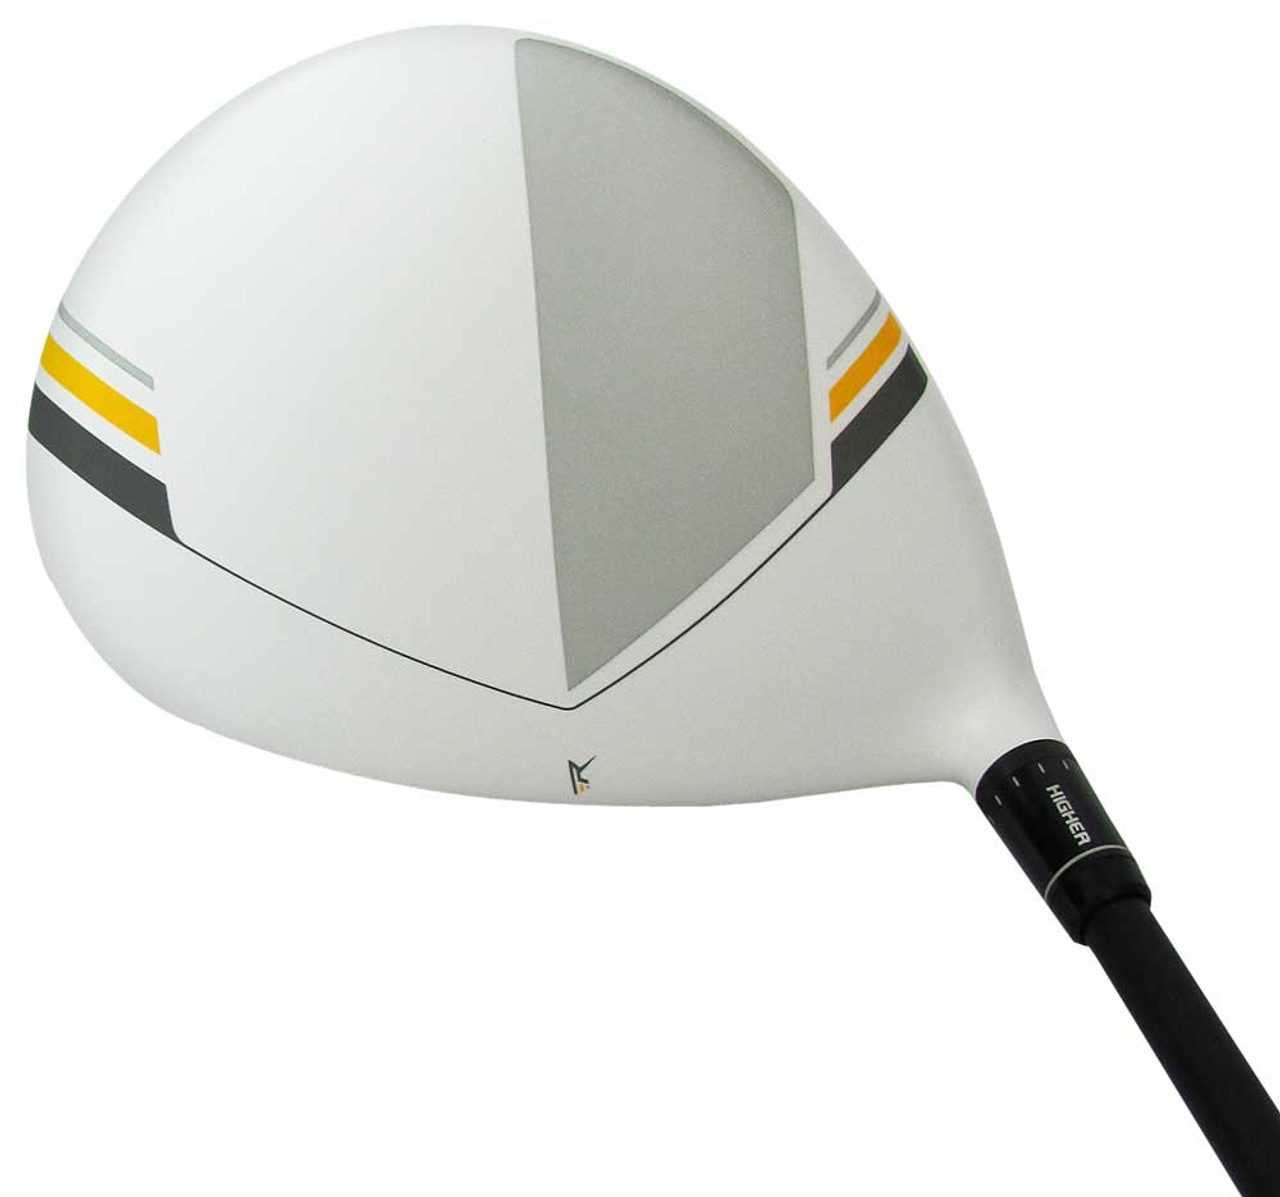 Pre-Owned TaylorMade Golf RocketBallz Stage 2 Driver (Ladies)